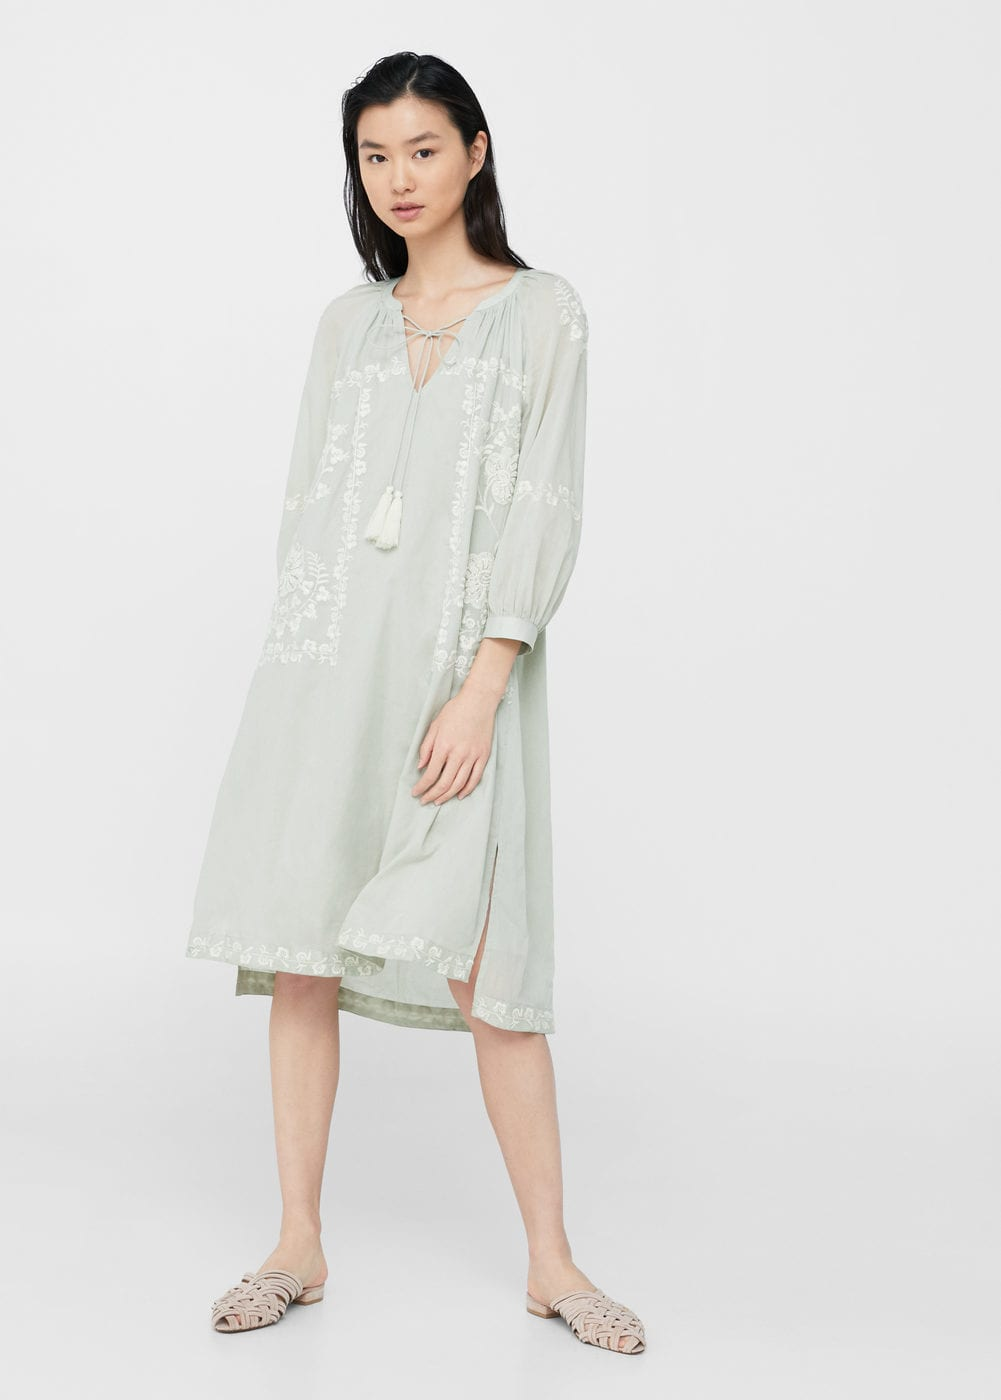 Wanted: Little Cotton Dresses